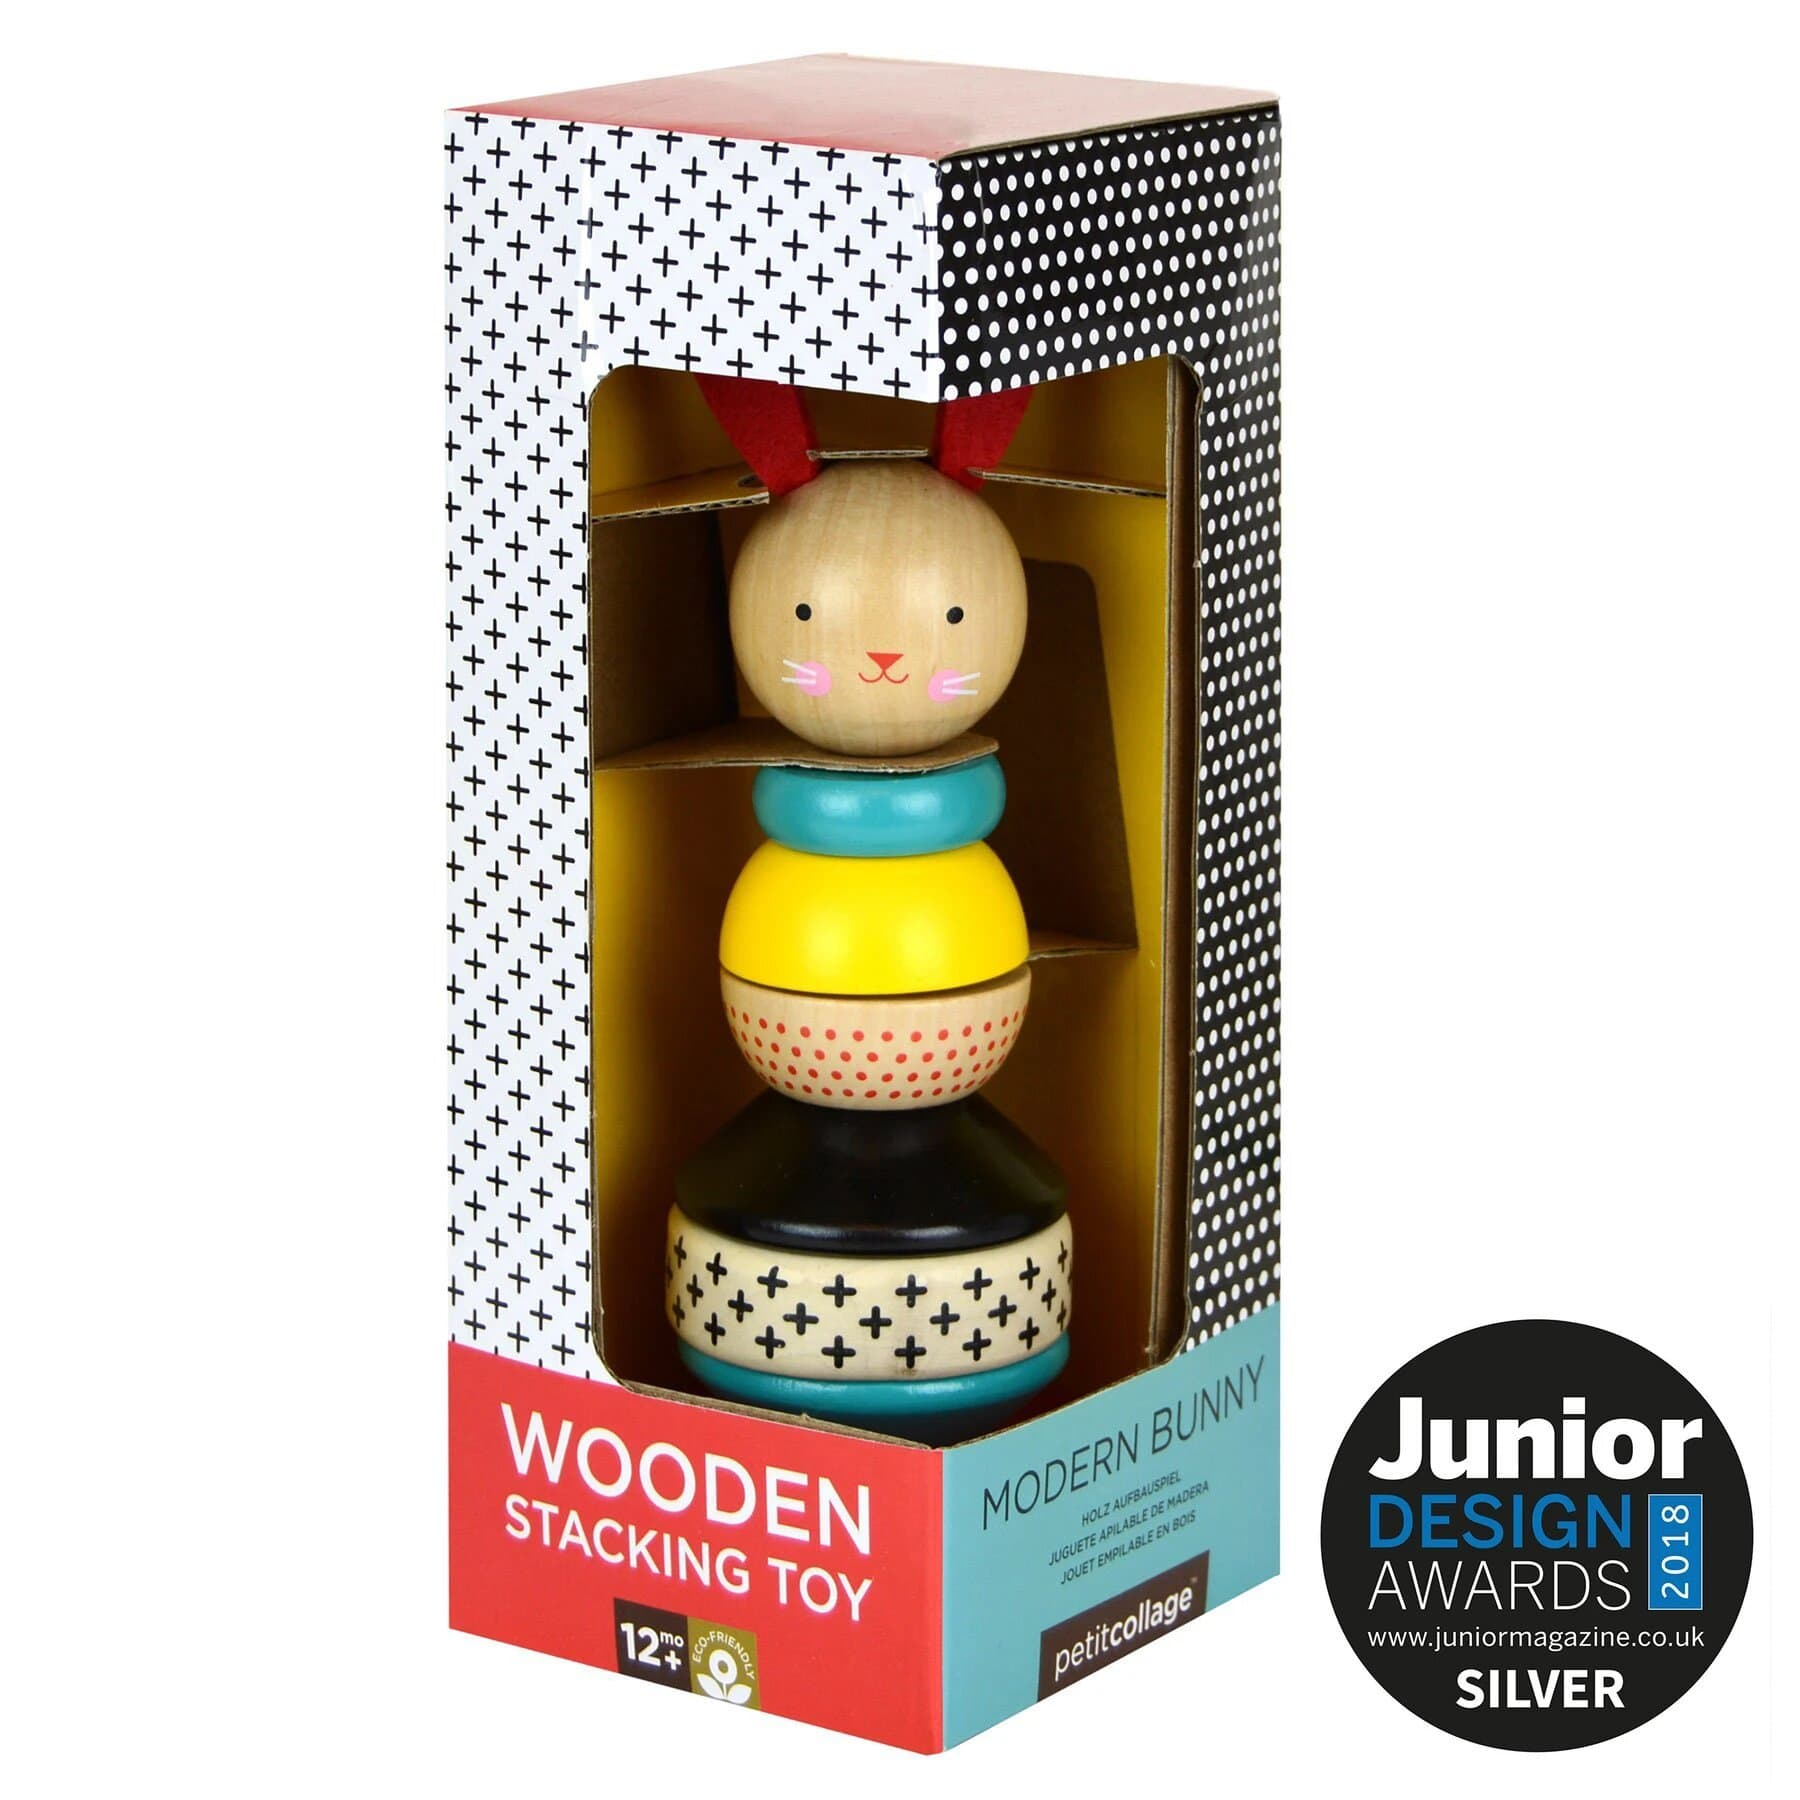 Wood Stacking Toy: Modern Bunny